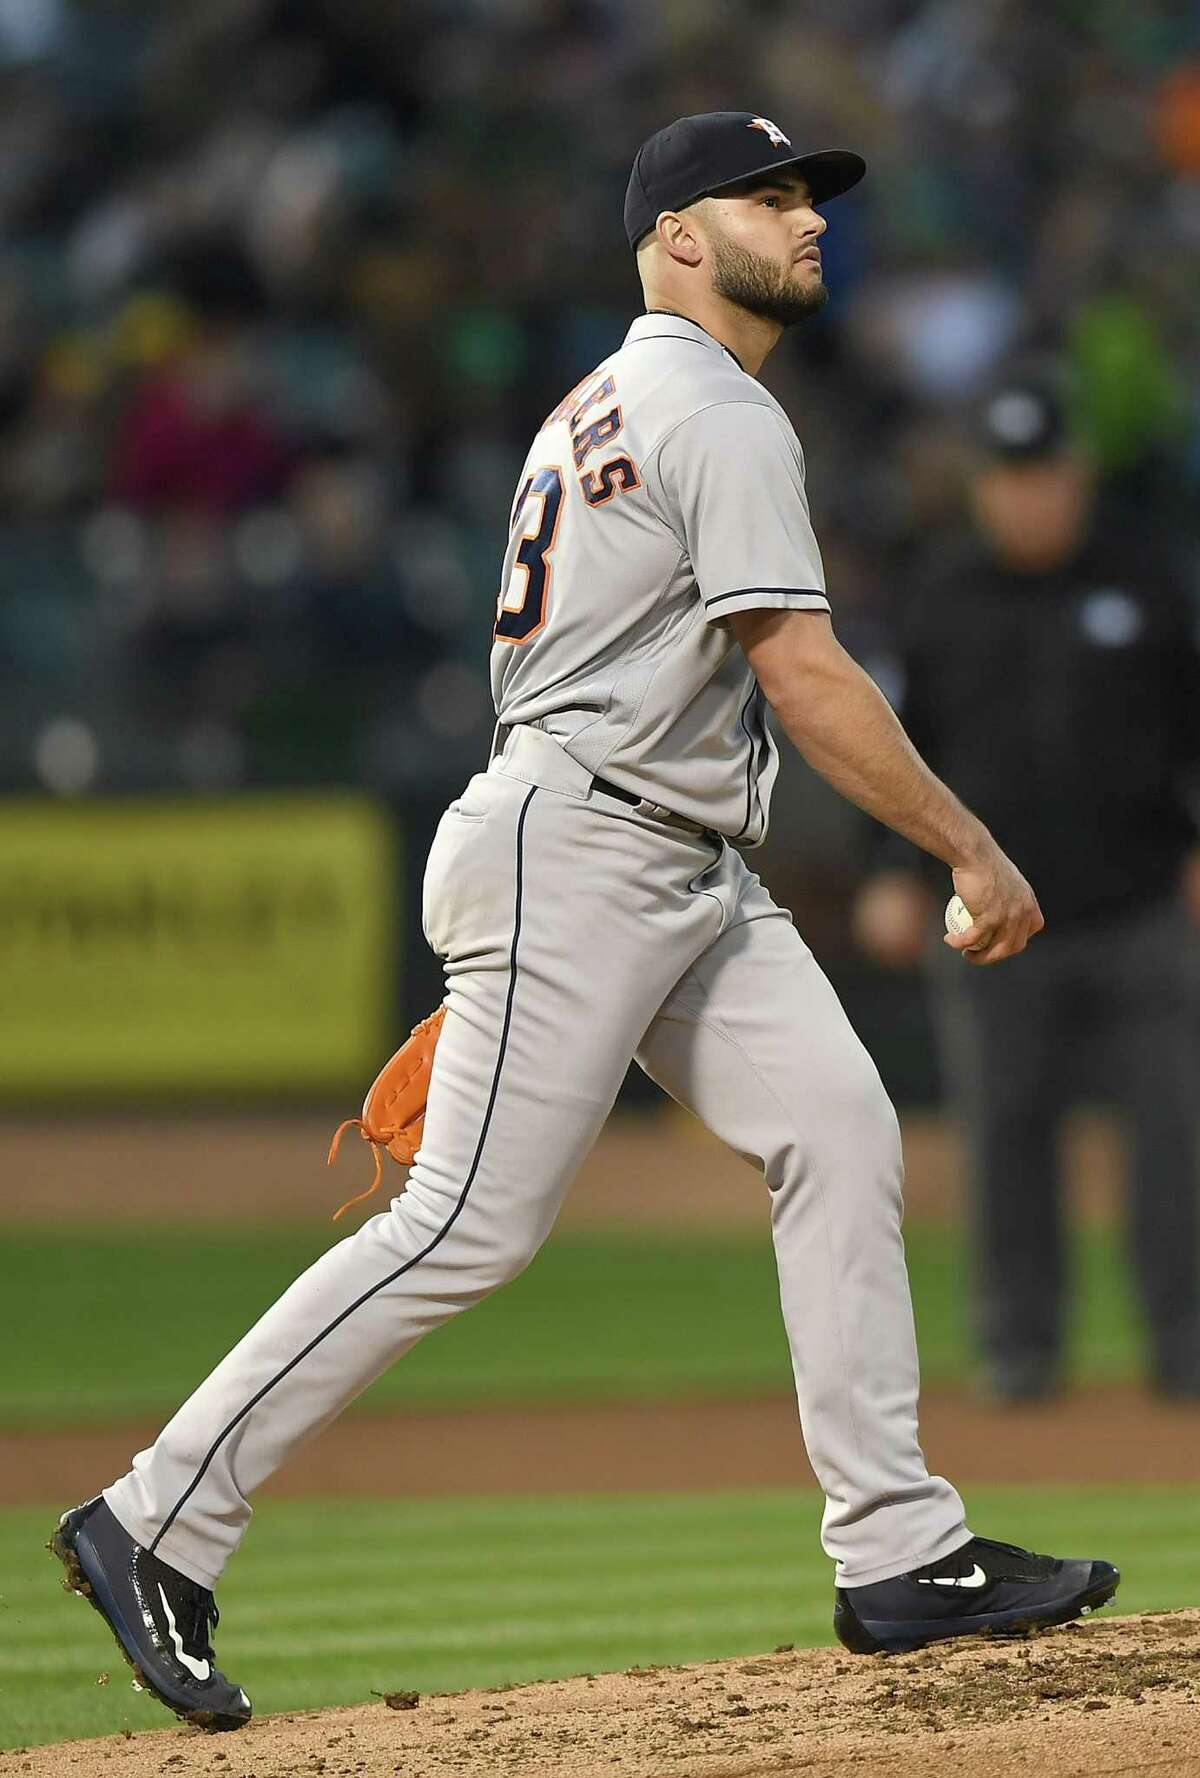 OAKLAND, CA - MAY 08: Lance McCullers Jr. #43 of the Houston Astros reacts walking back up on the mound with a new ball after walking Jed Lowrie #8 of the Oakland Athletics to load the bases in the bottom of the third inning at the Oakland Alameda Coliseum on May 8, 2018 in Oakland, California.